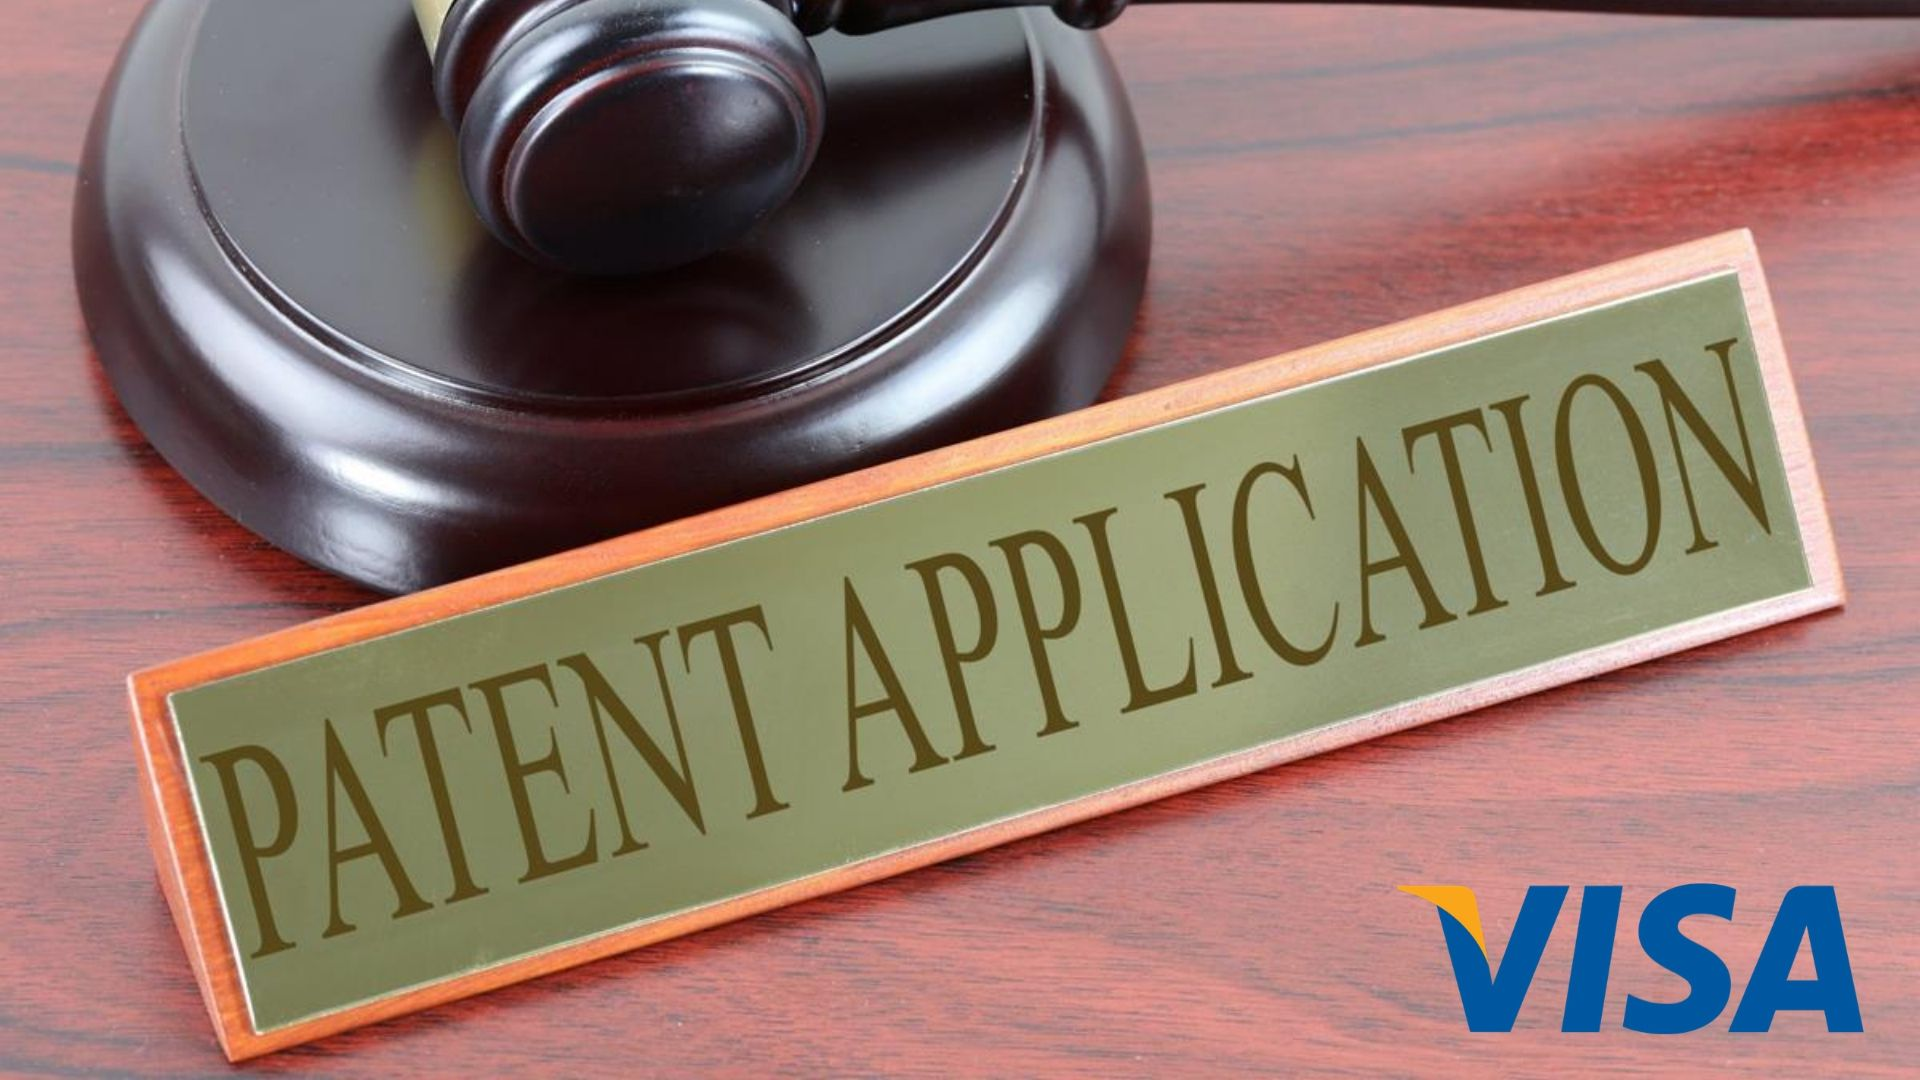 Visa Files Patent Application for Digital Currency